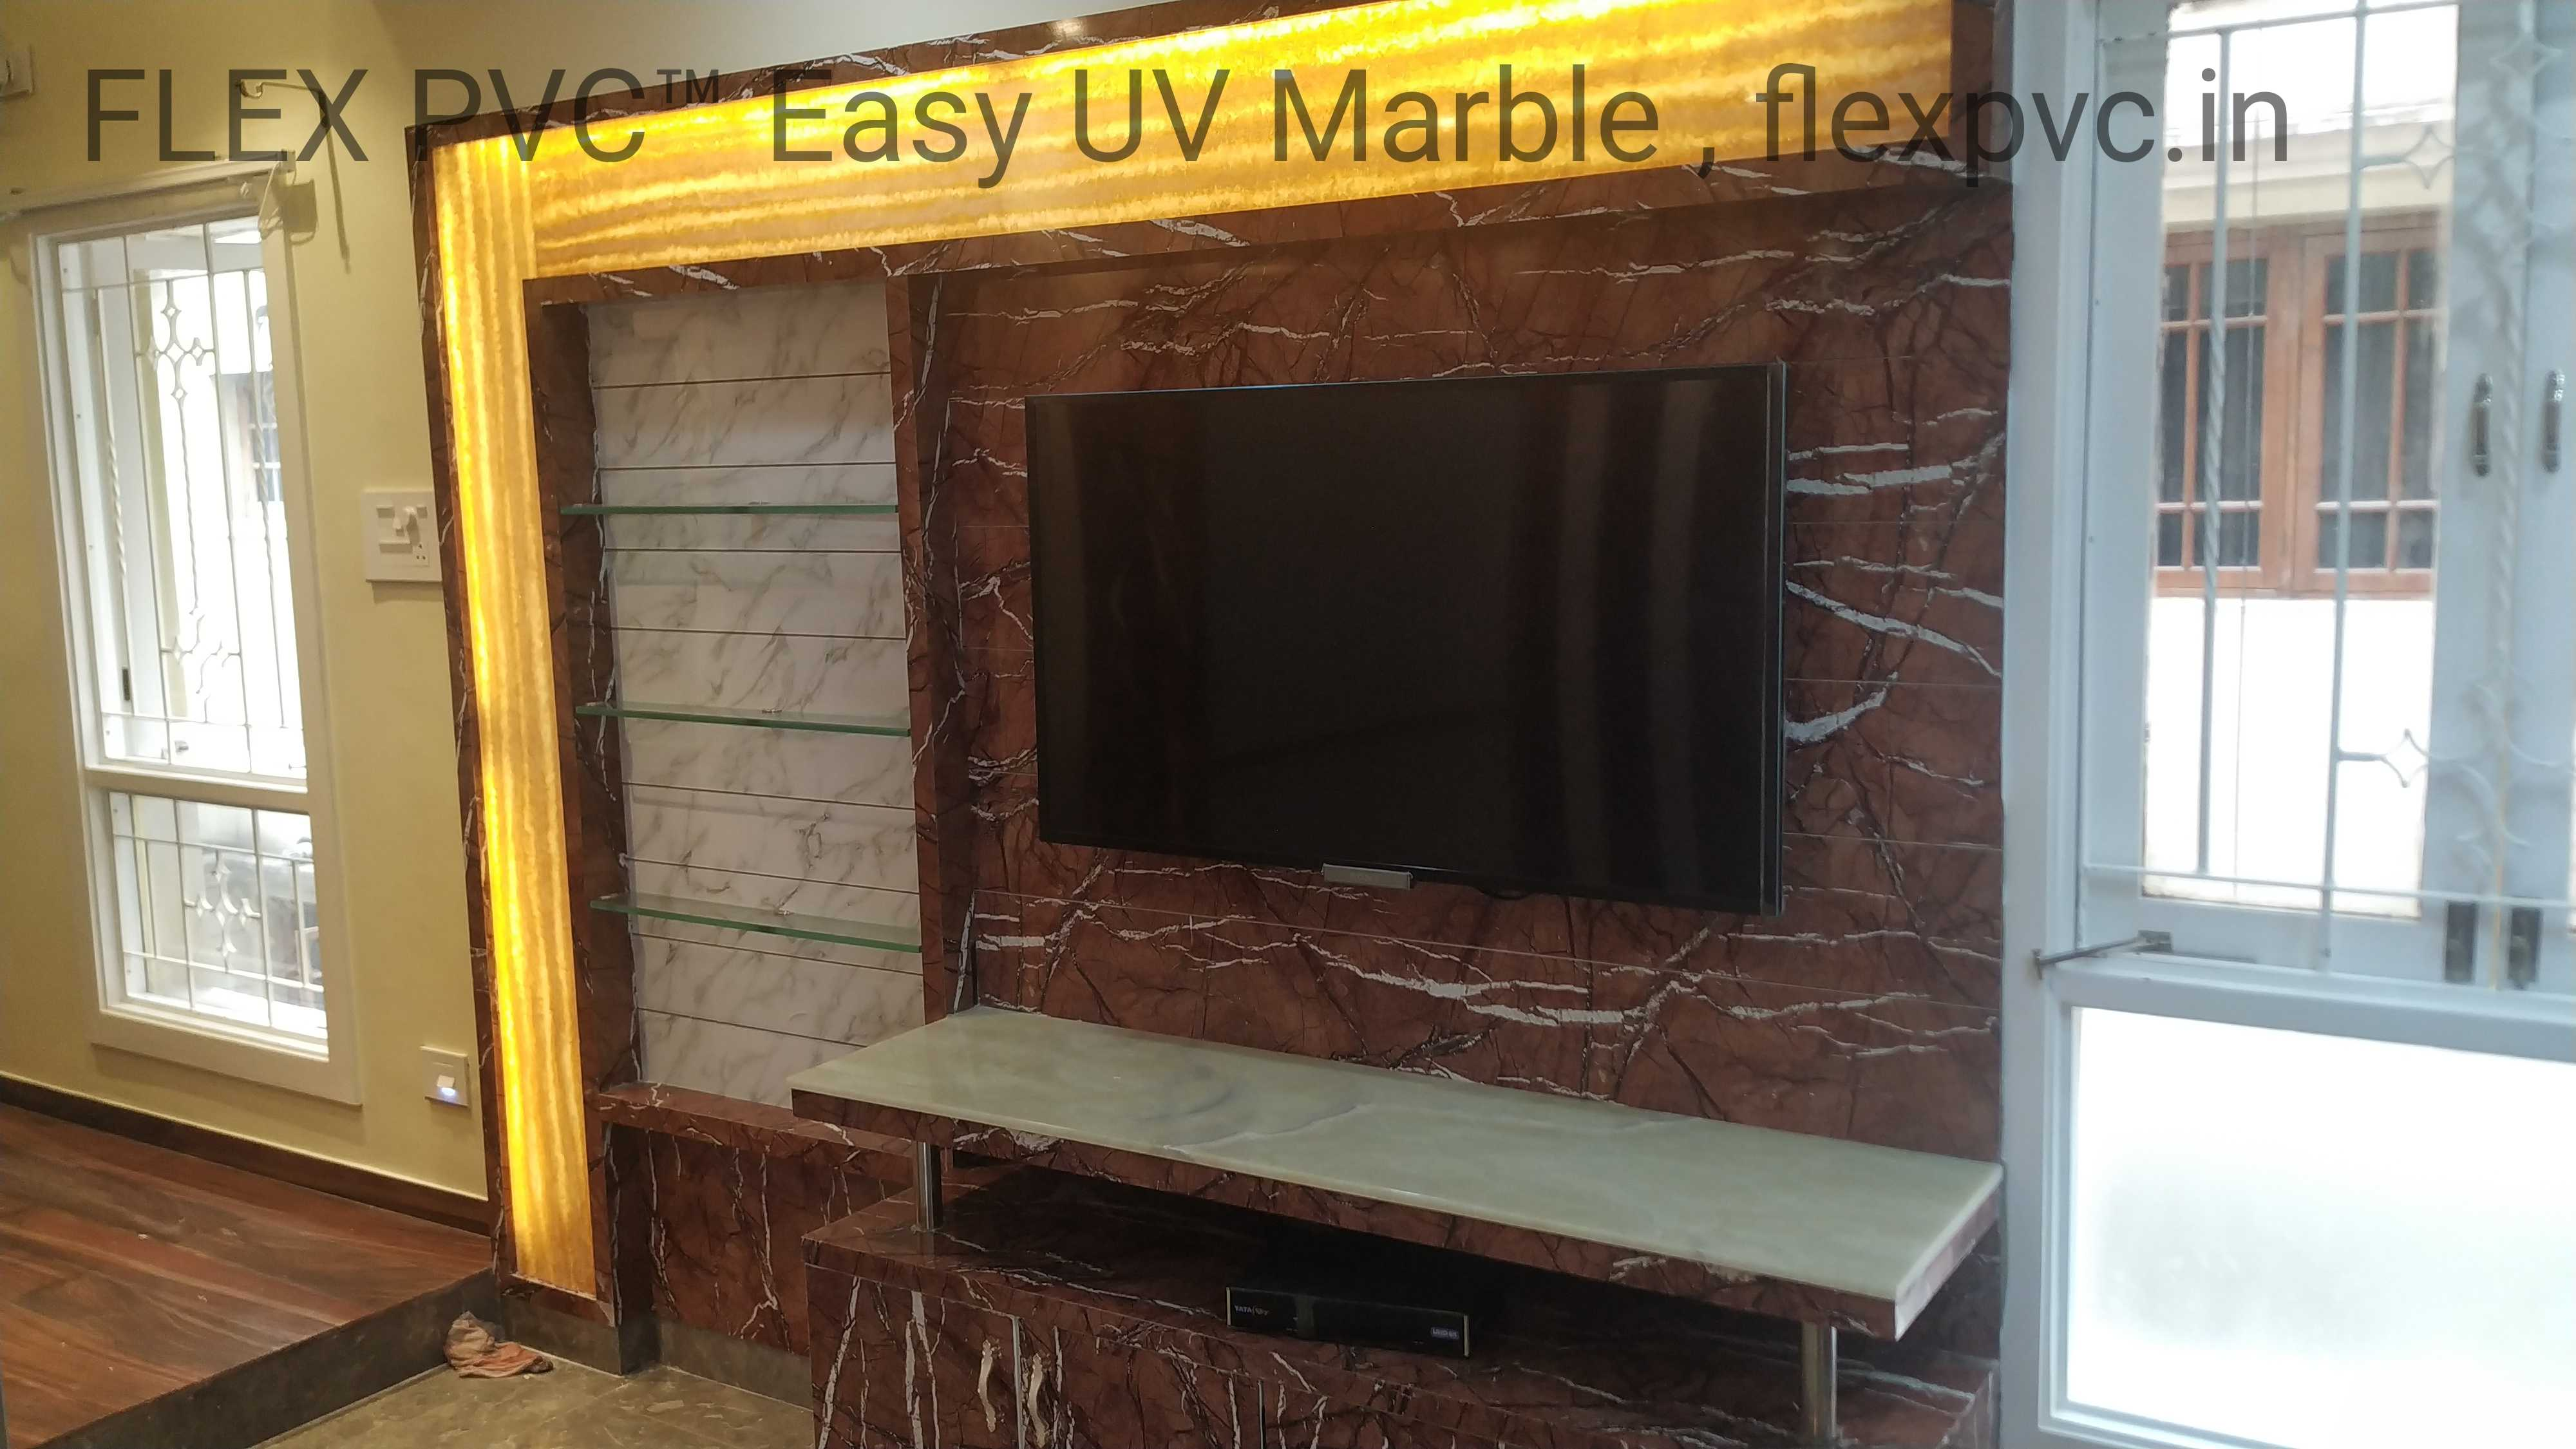 tv background flex pvc marble